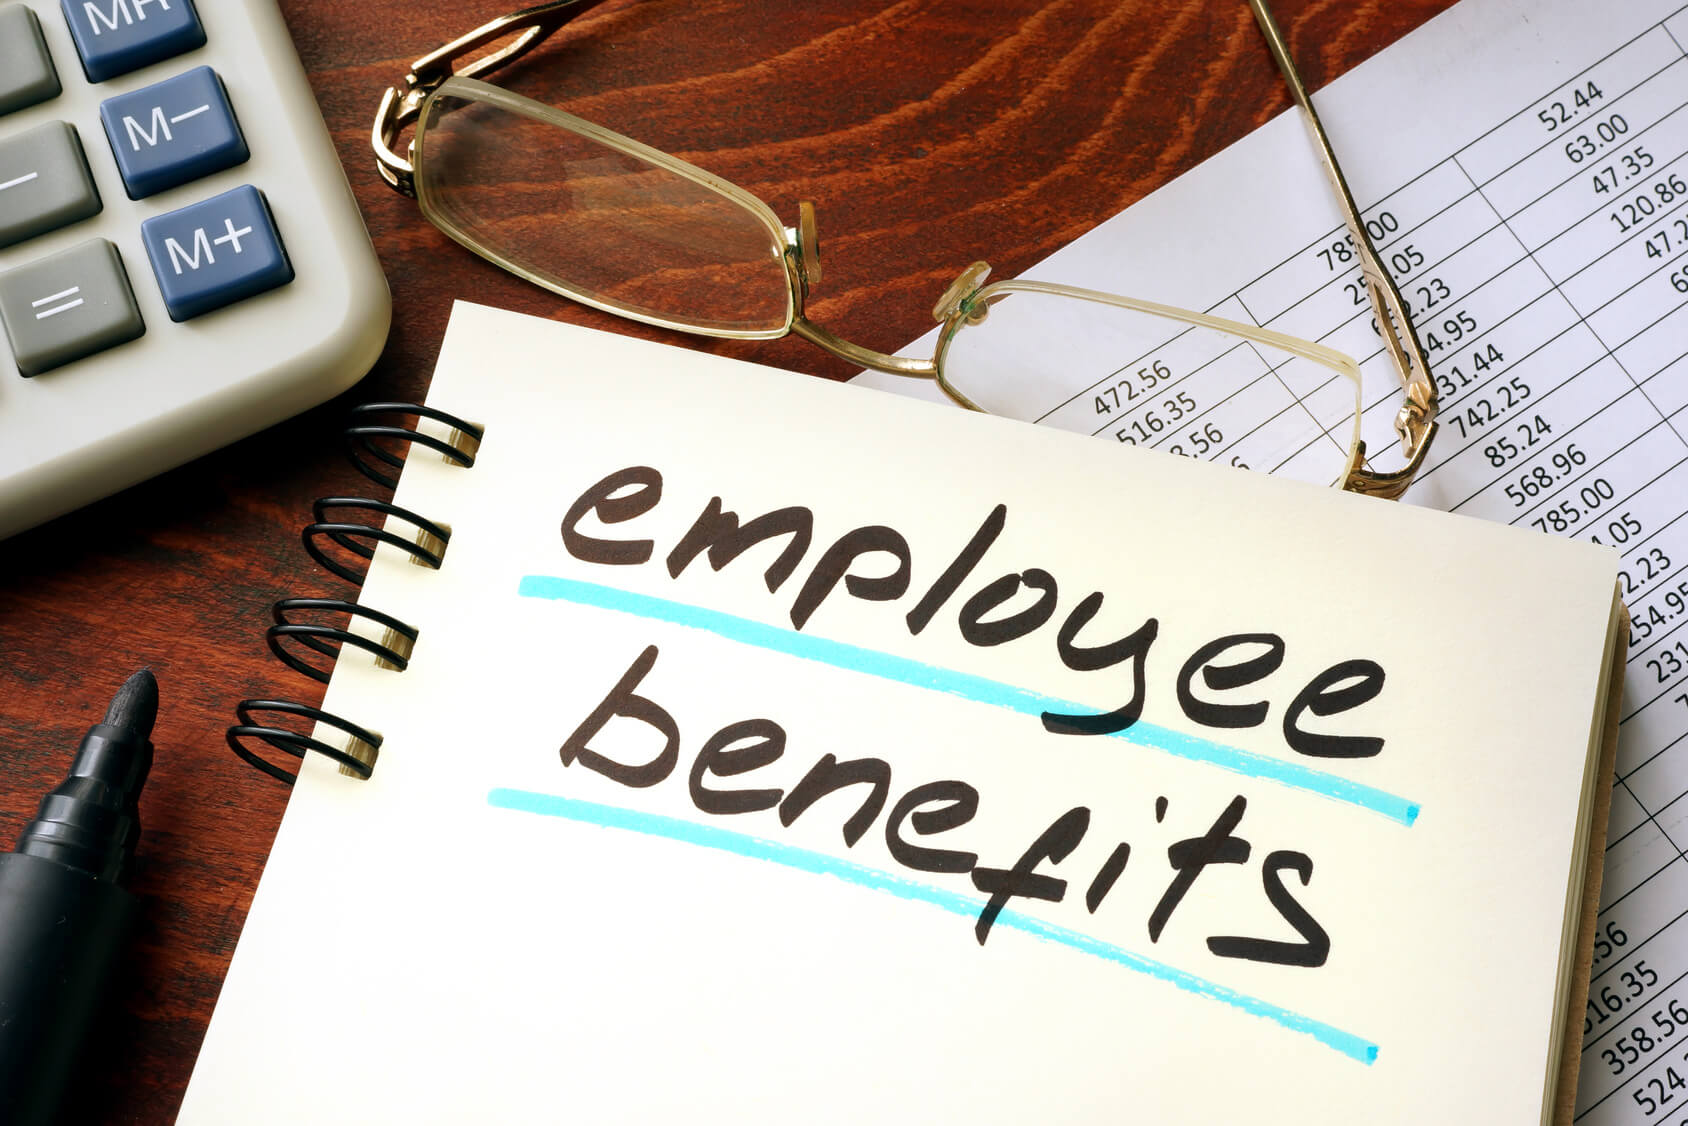 Attracting the best people - the value of benefits and job perks over more money